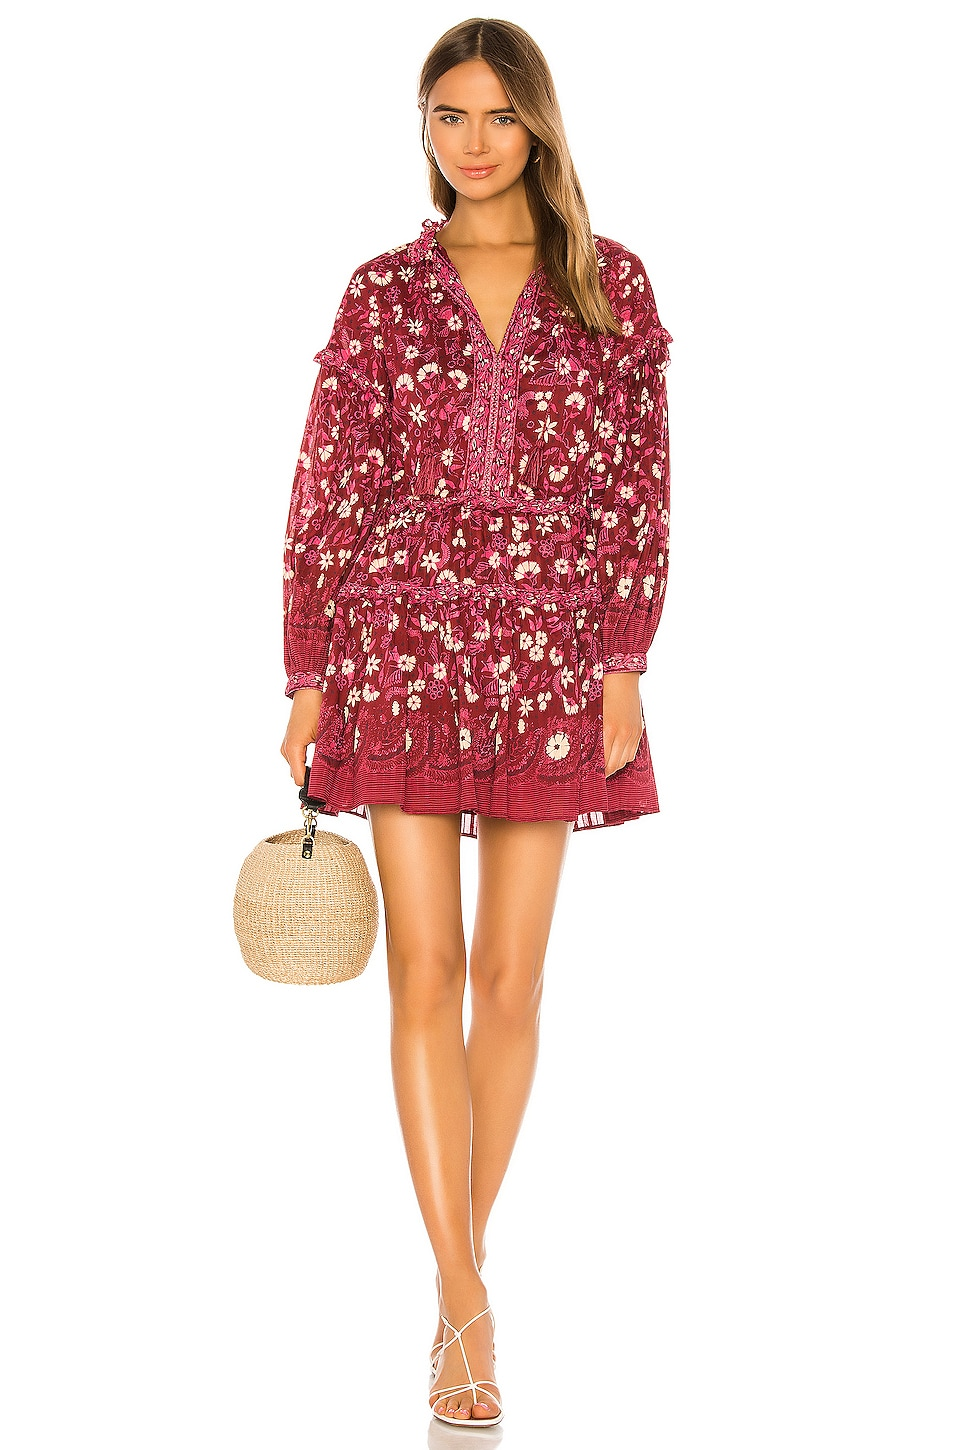 Ulla Johnson Marigold Dress in Burgundy